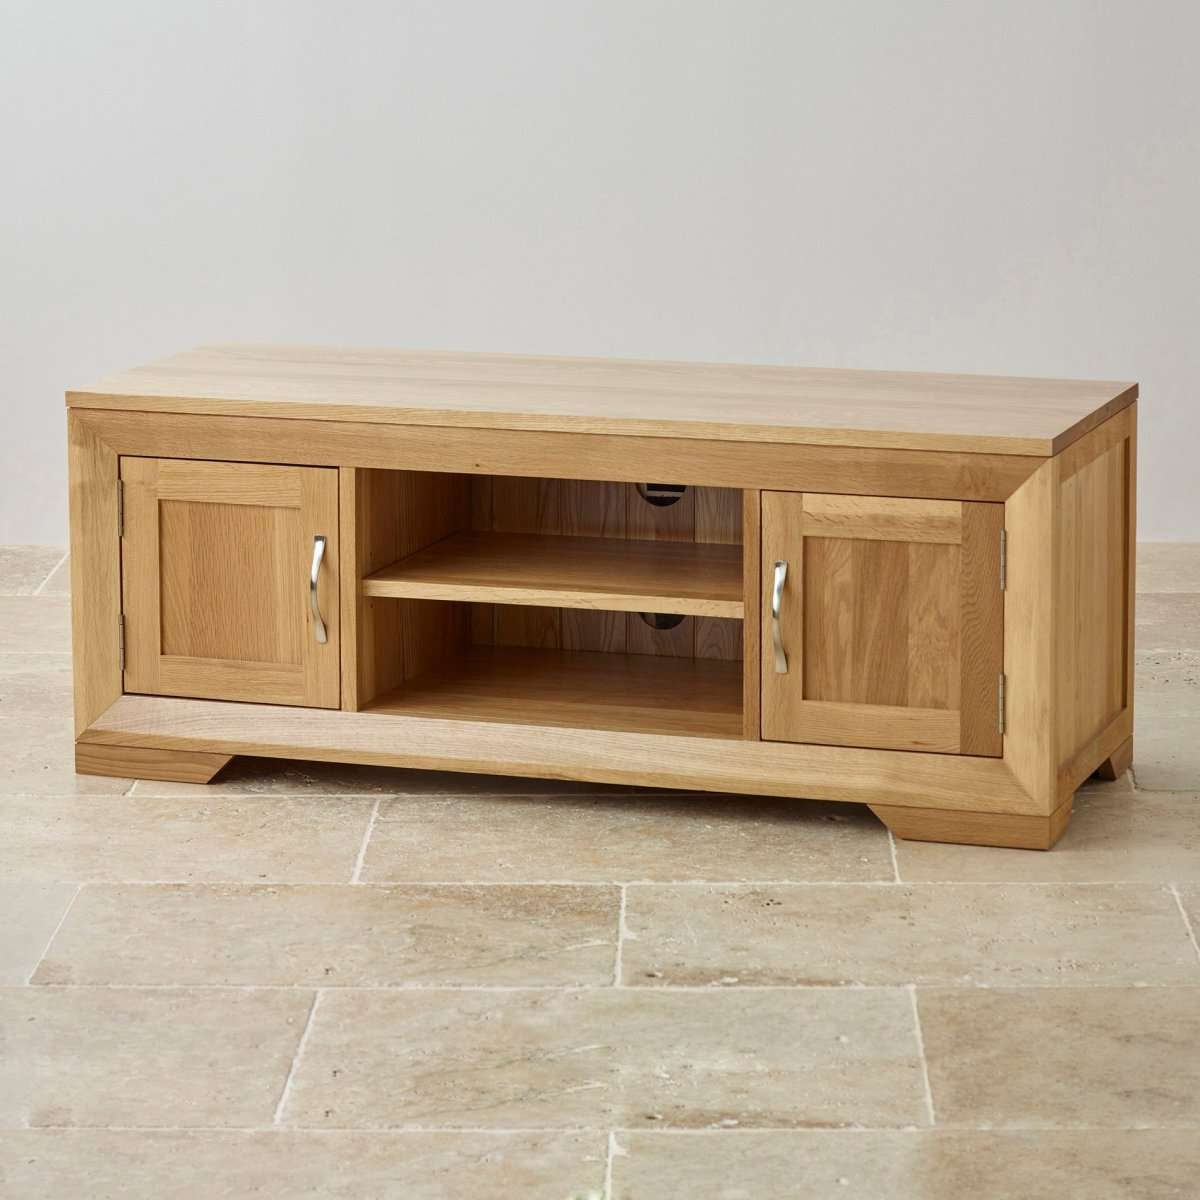 Solid Oak Tv Stands : Innovative Designs Oak Tv Console – Marku Throughout Cheap Oak Tv Stands (View 15 of 15)